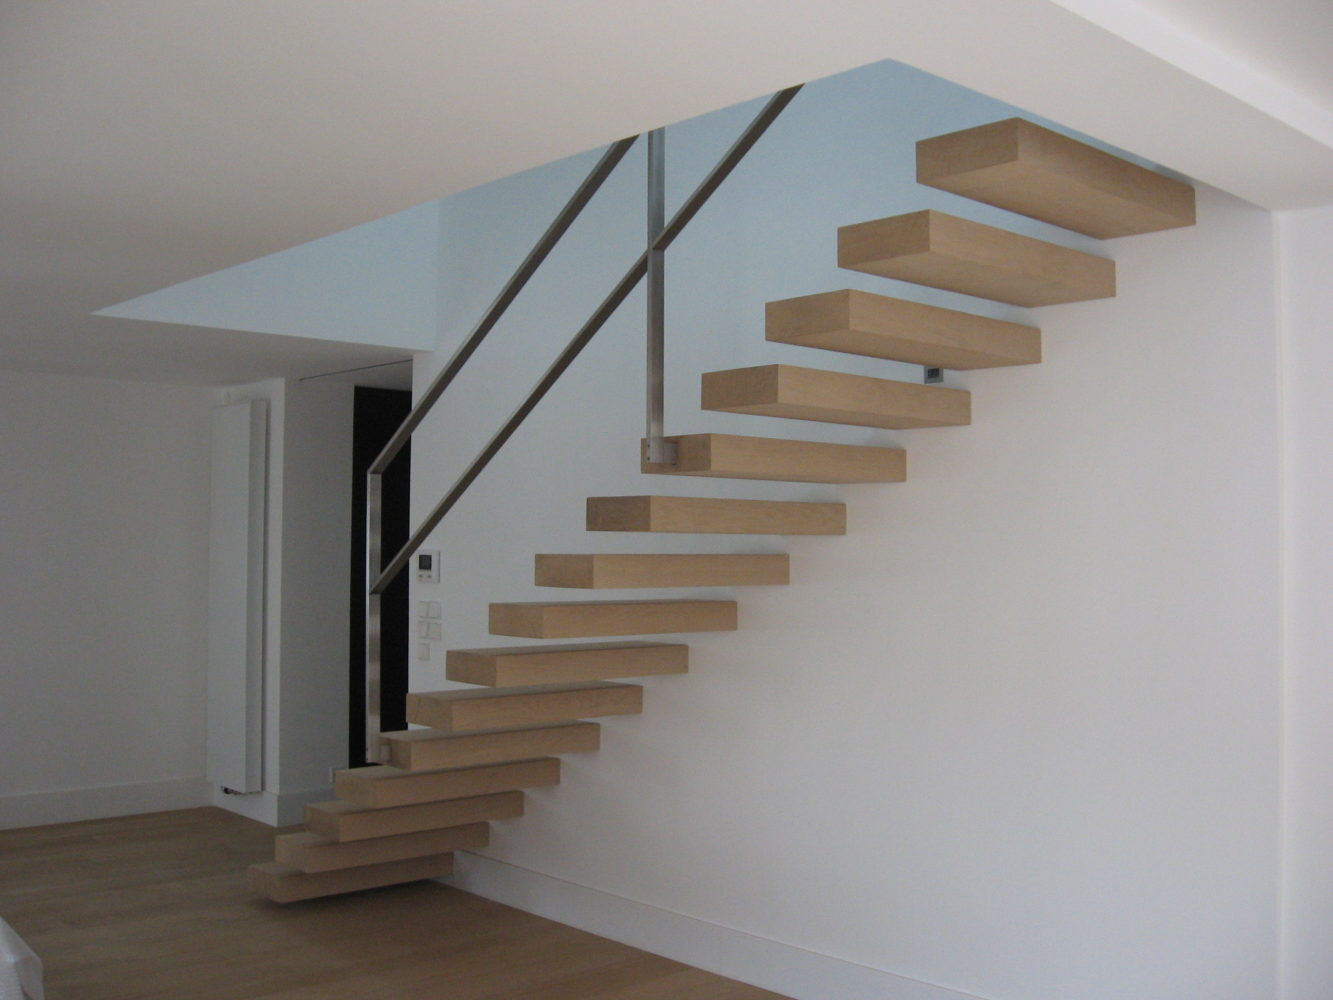 Escalier Marches Suspendues Mur wall-mounted staircase - schaffner